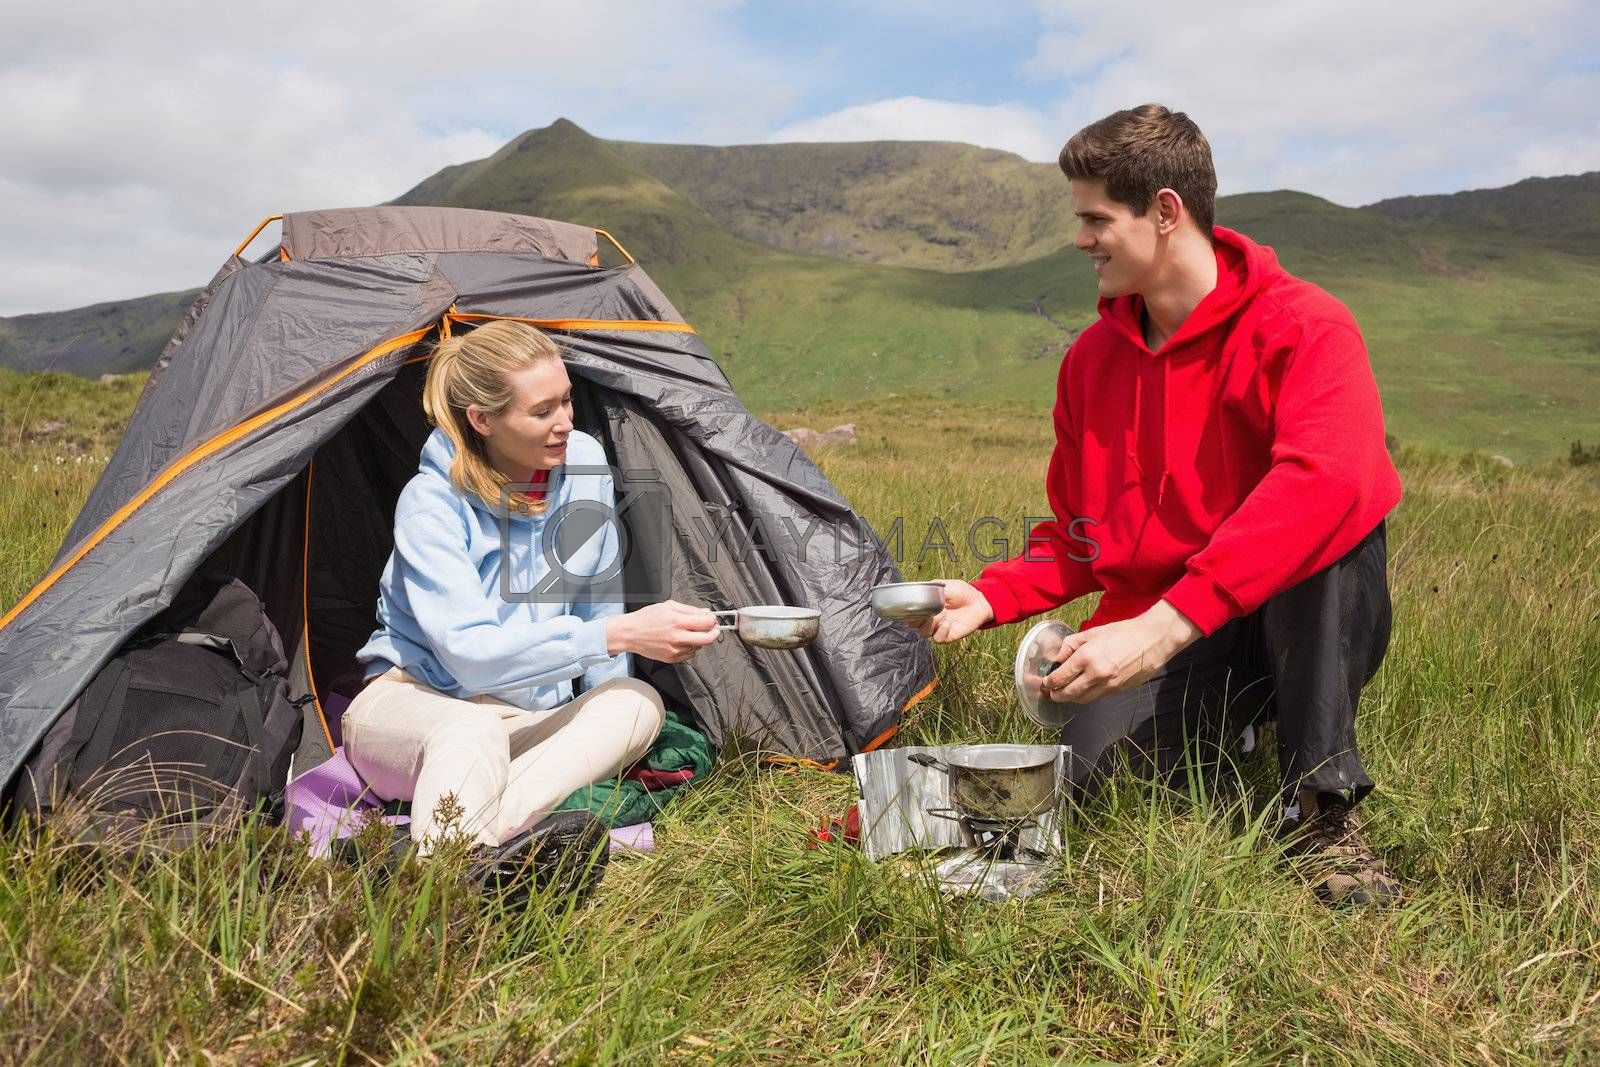 Cheerful couple cooking outdoors on camping trip by Wavebreakmedia